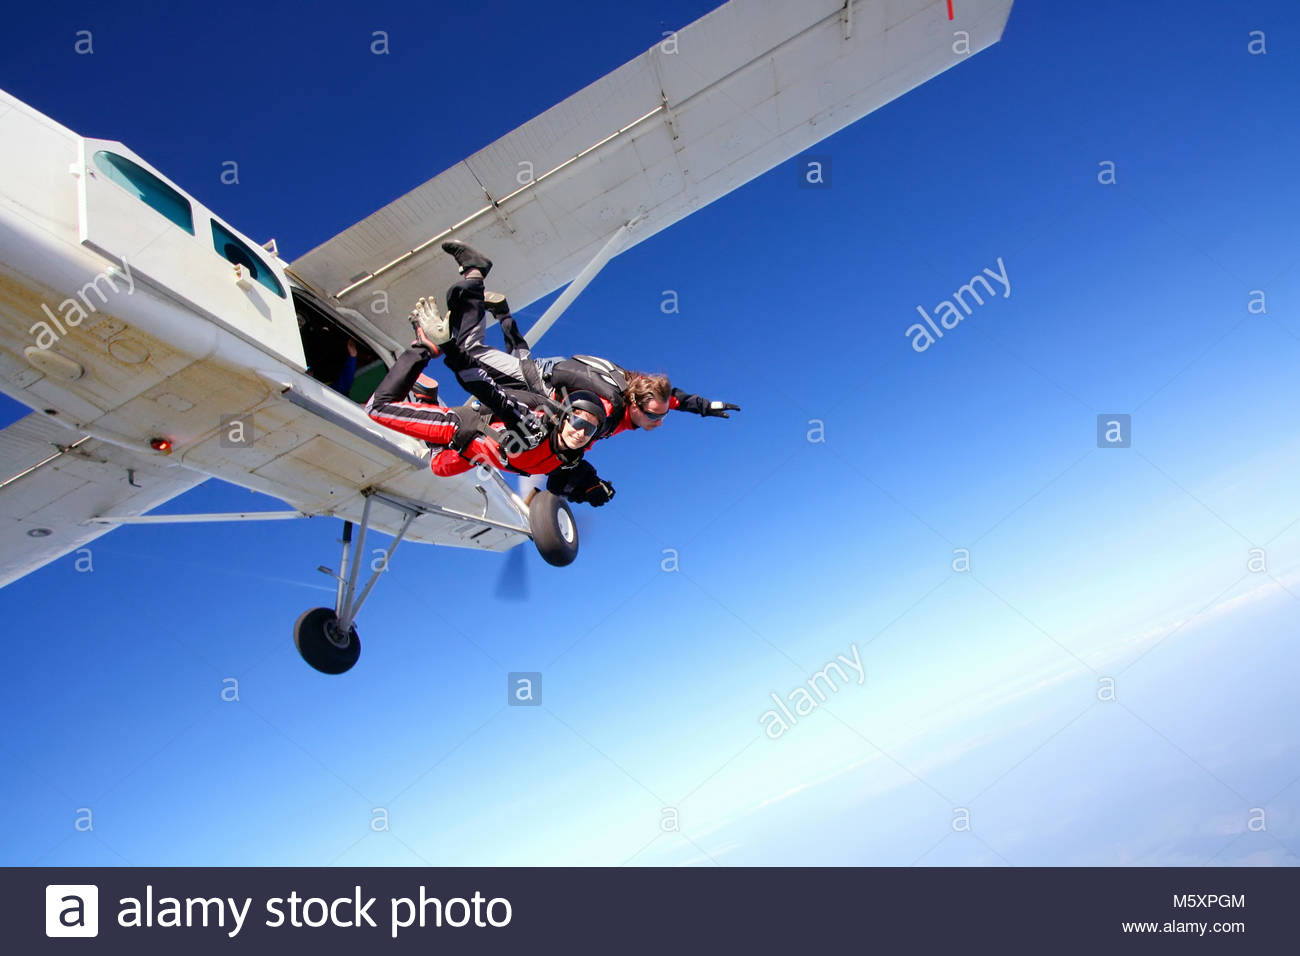 Skydive couple in action - Stock Image